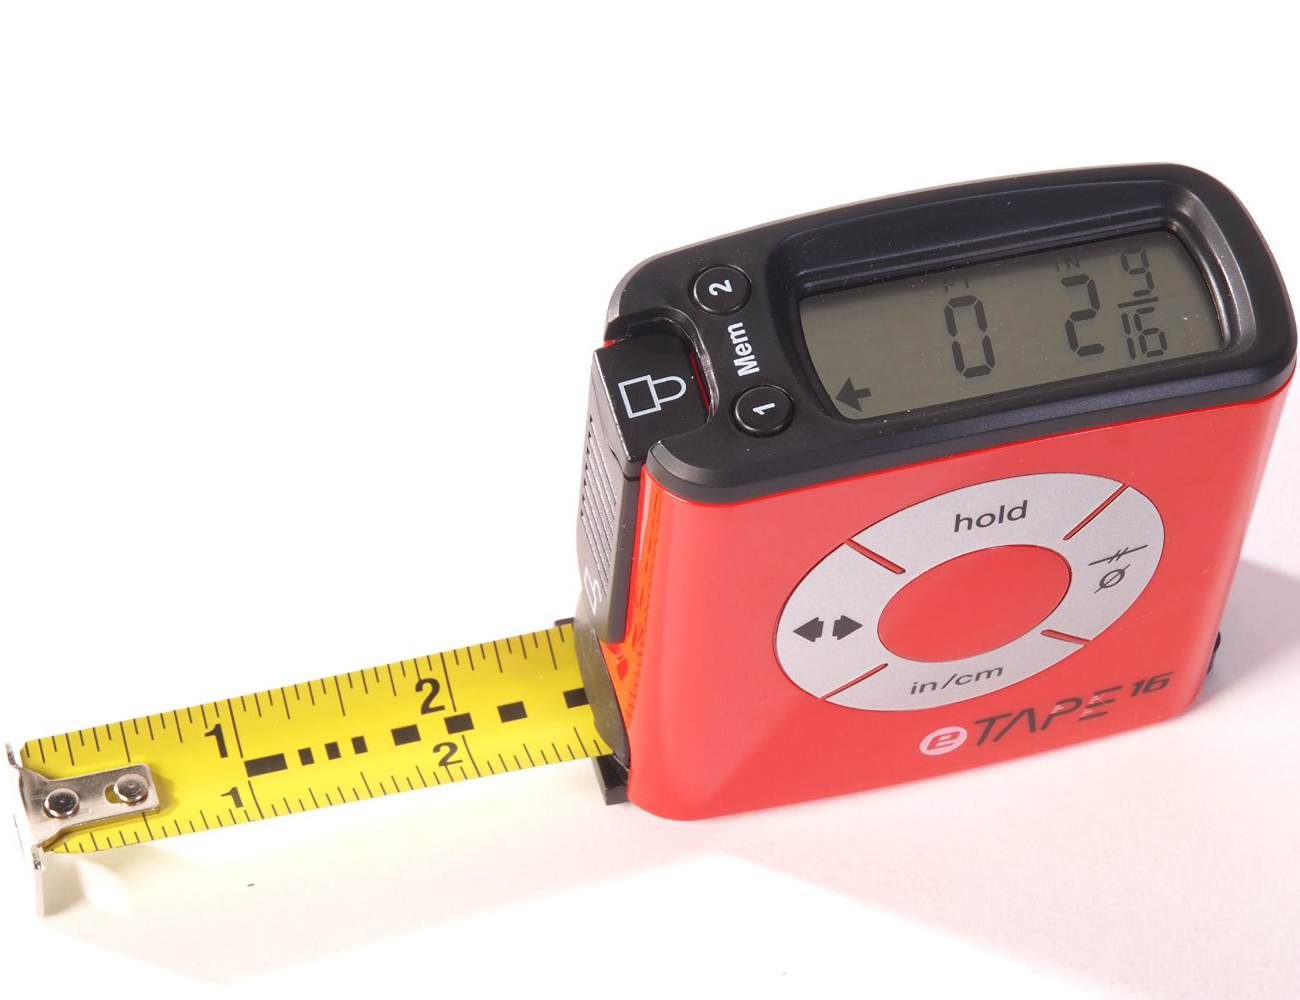 eTape16 Digital Tape Measure